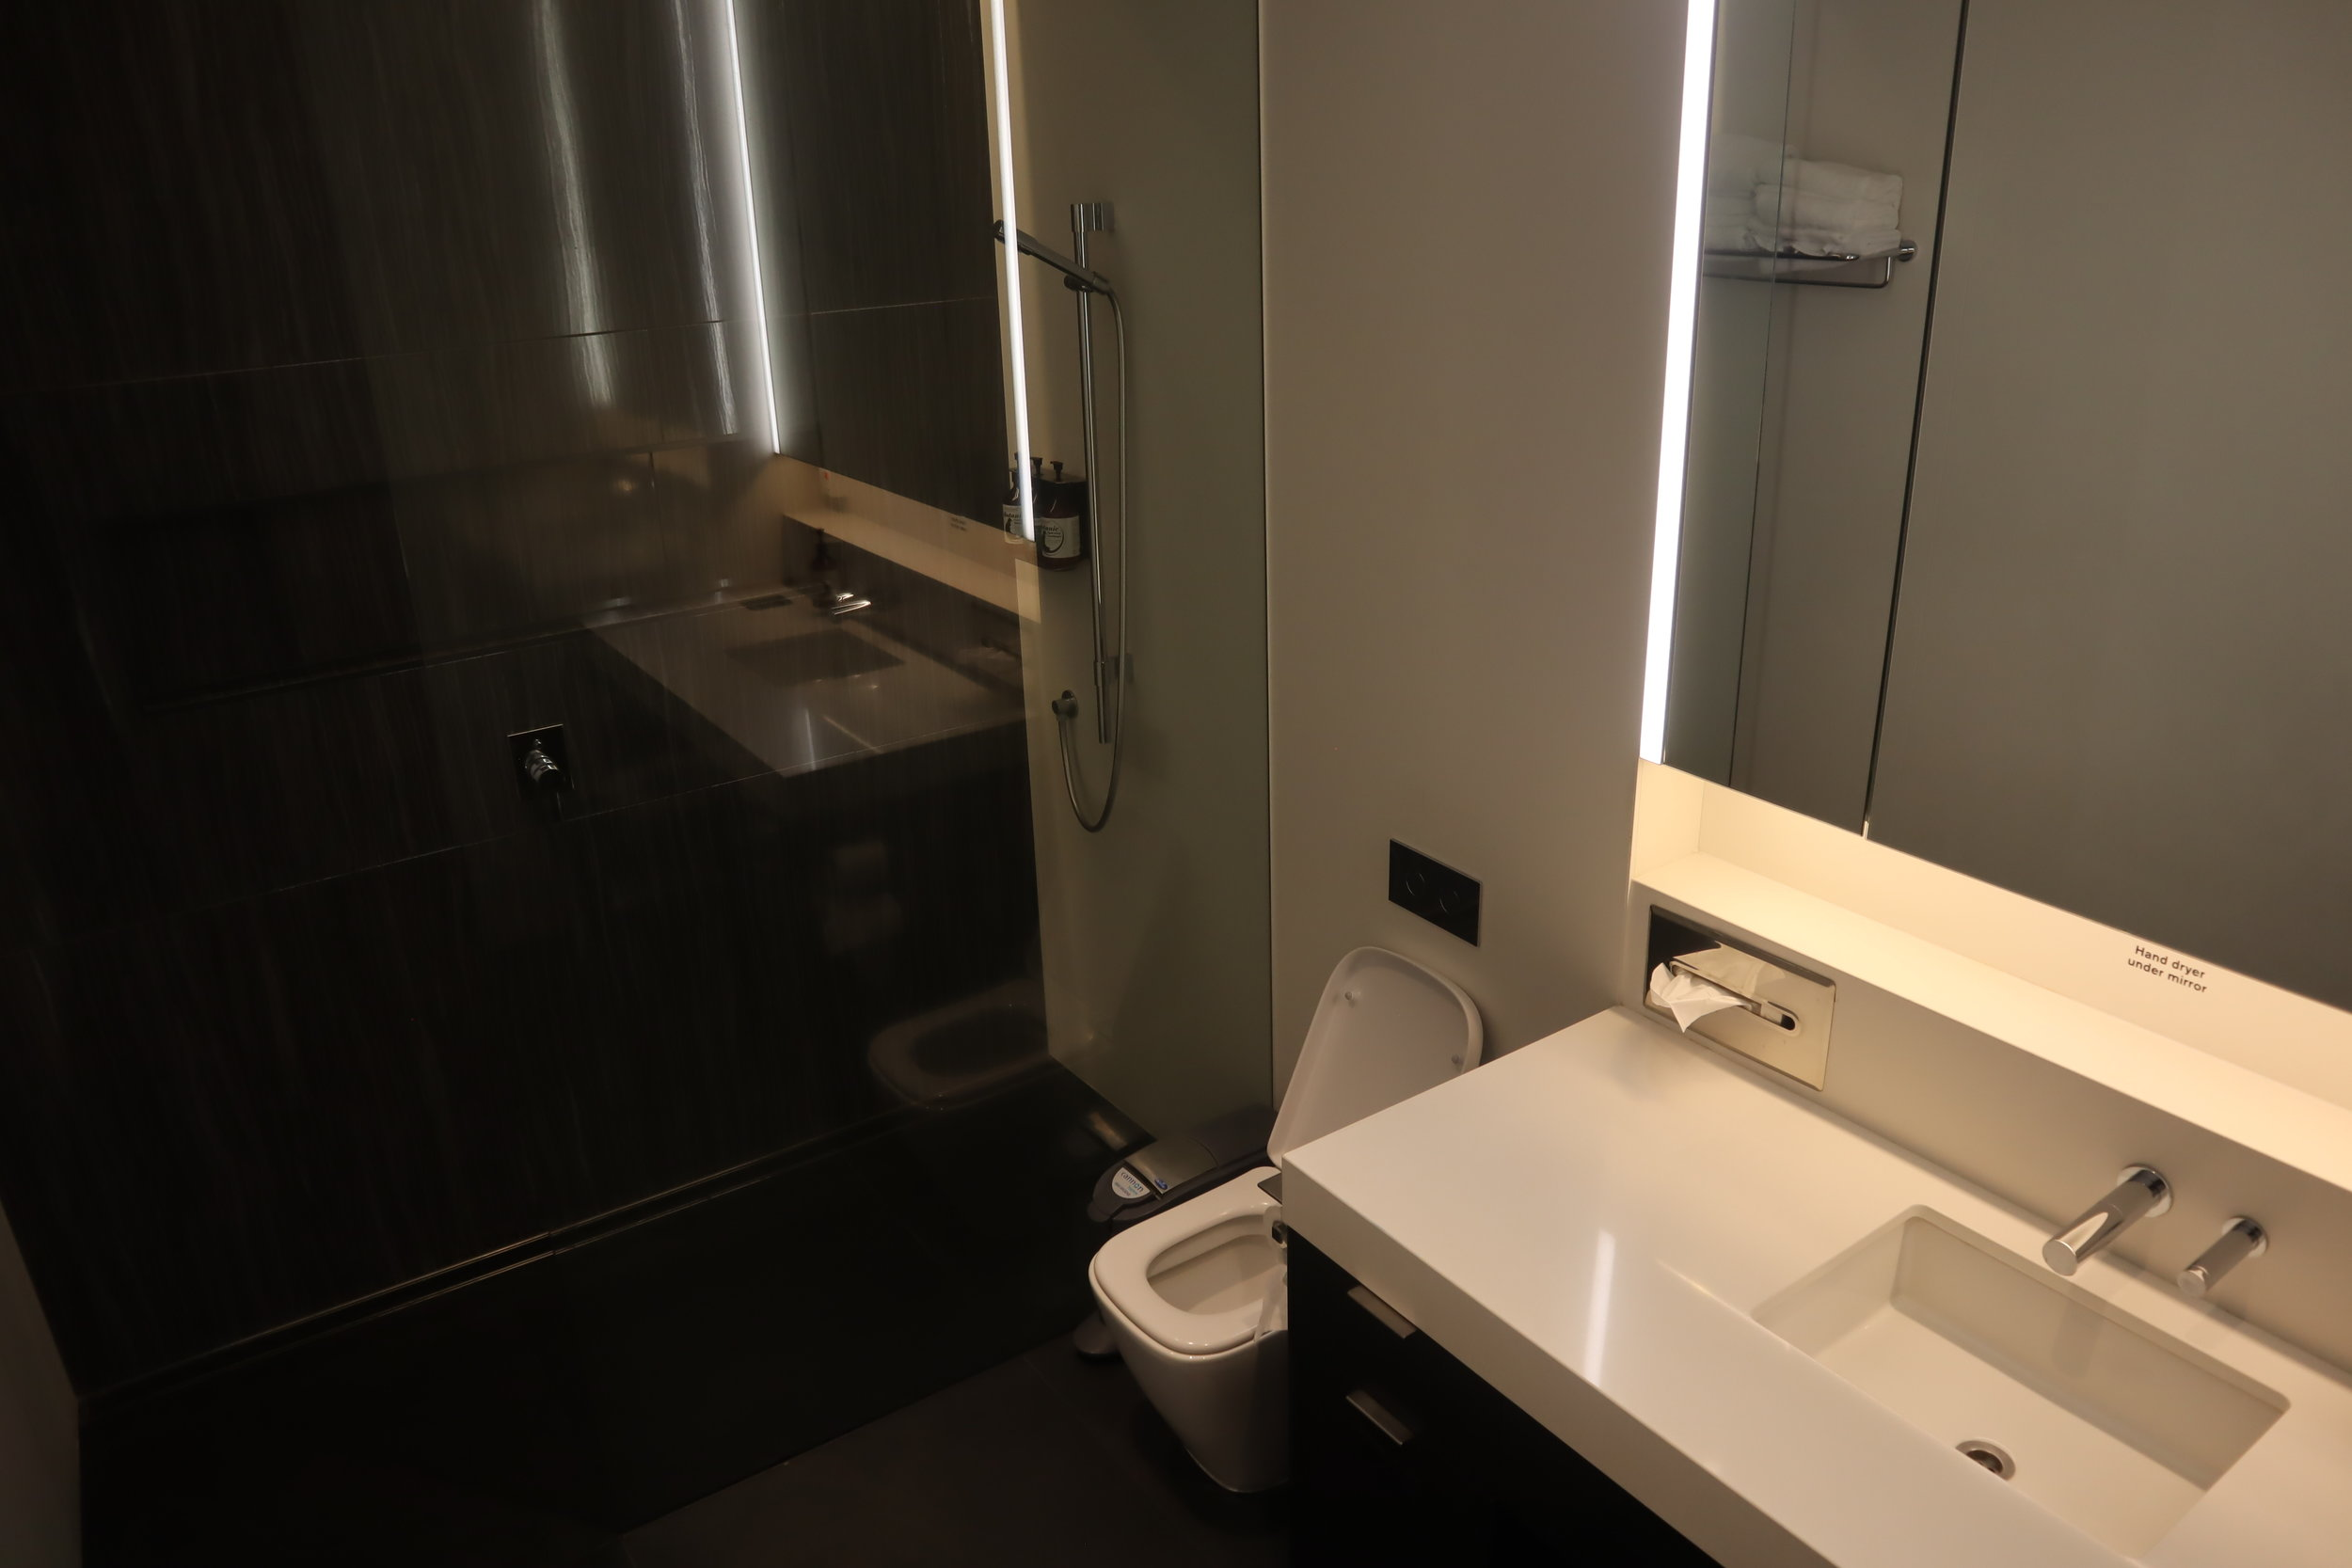 Air New Zealand Lounge Auckland – Shower room